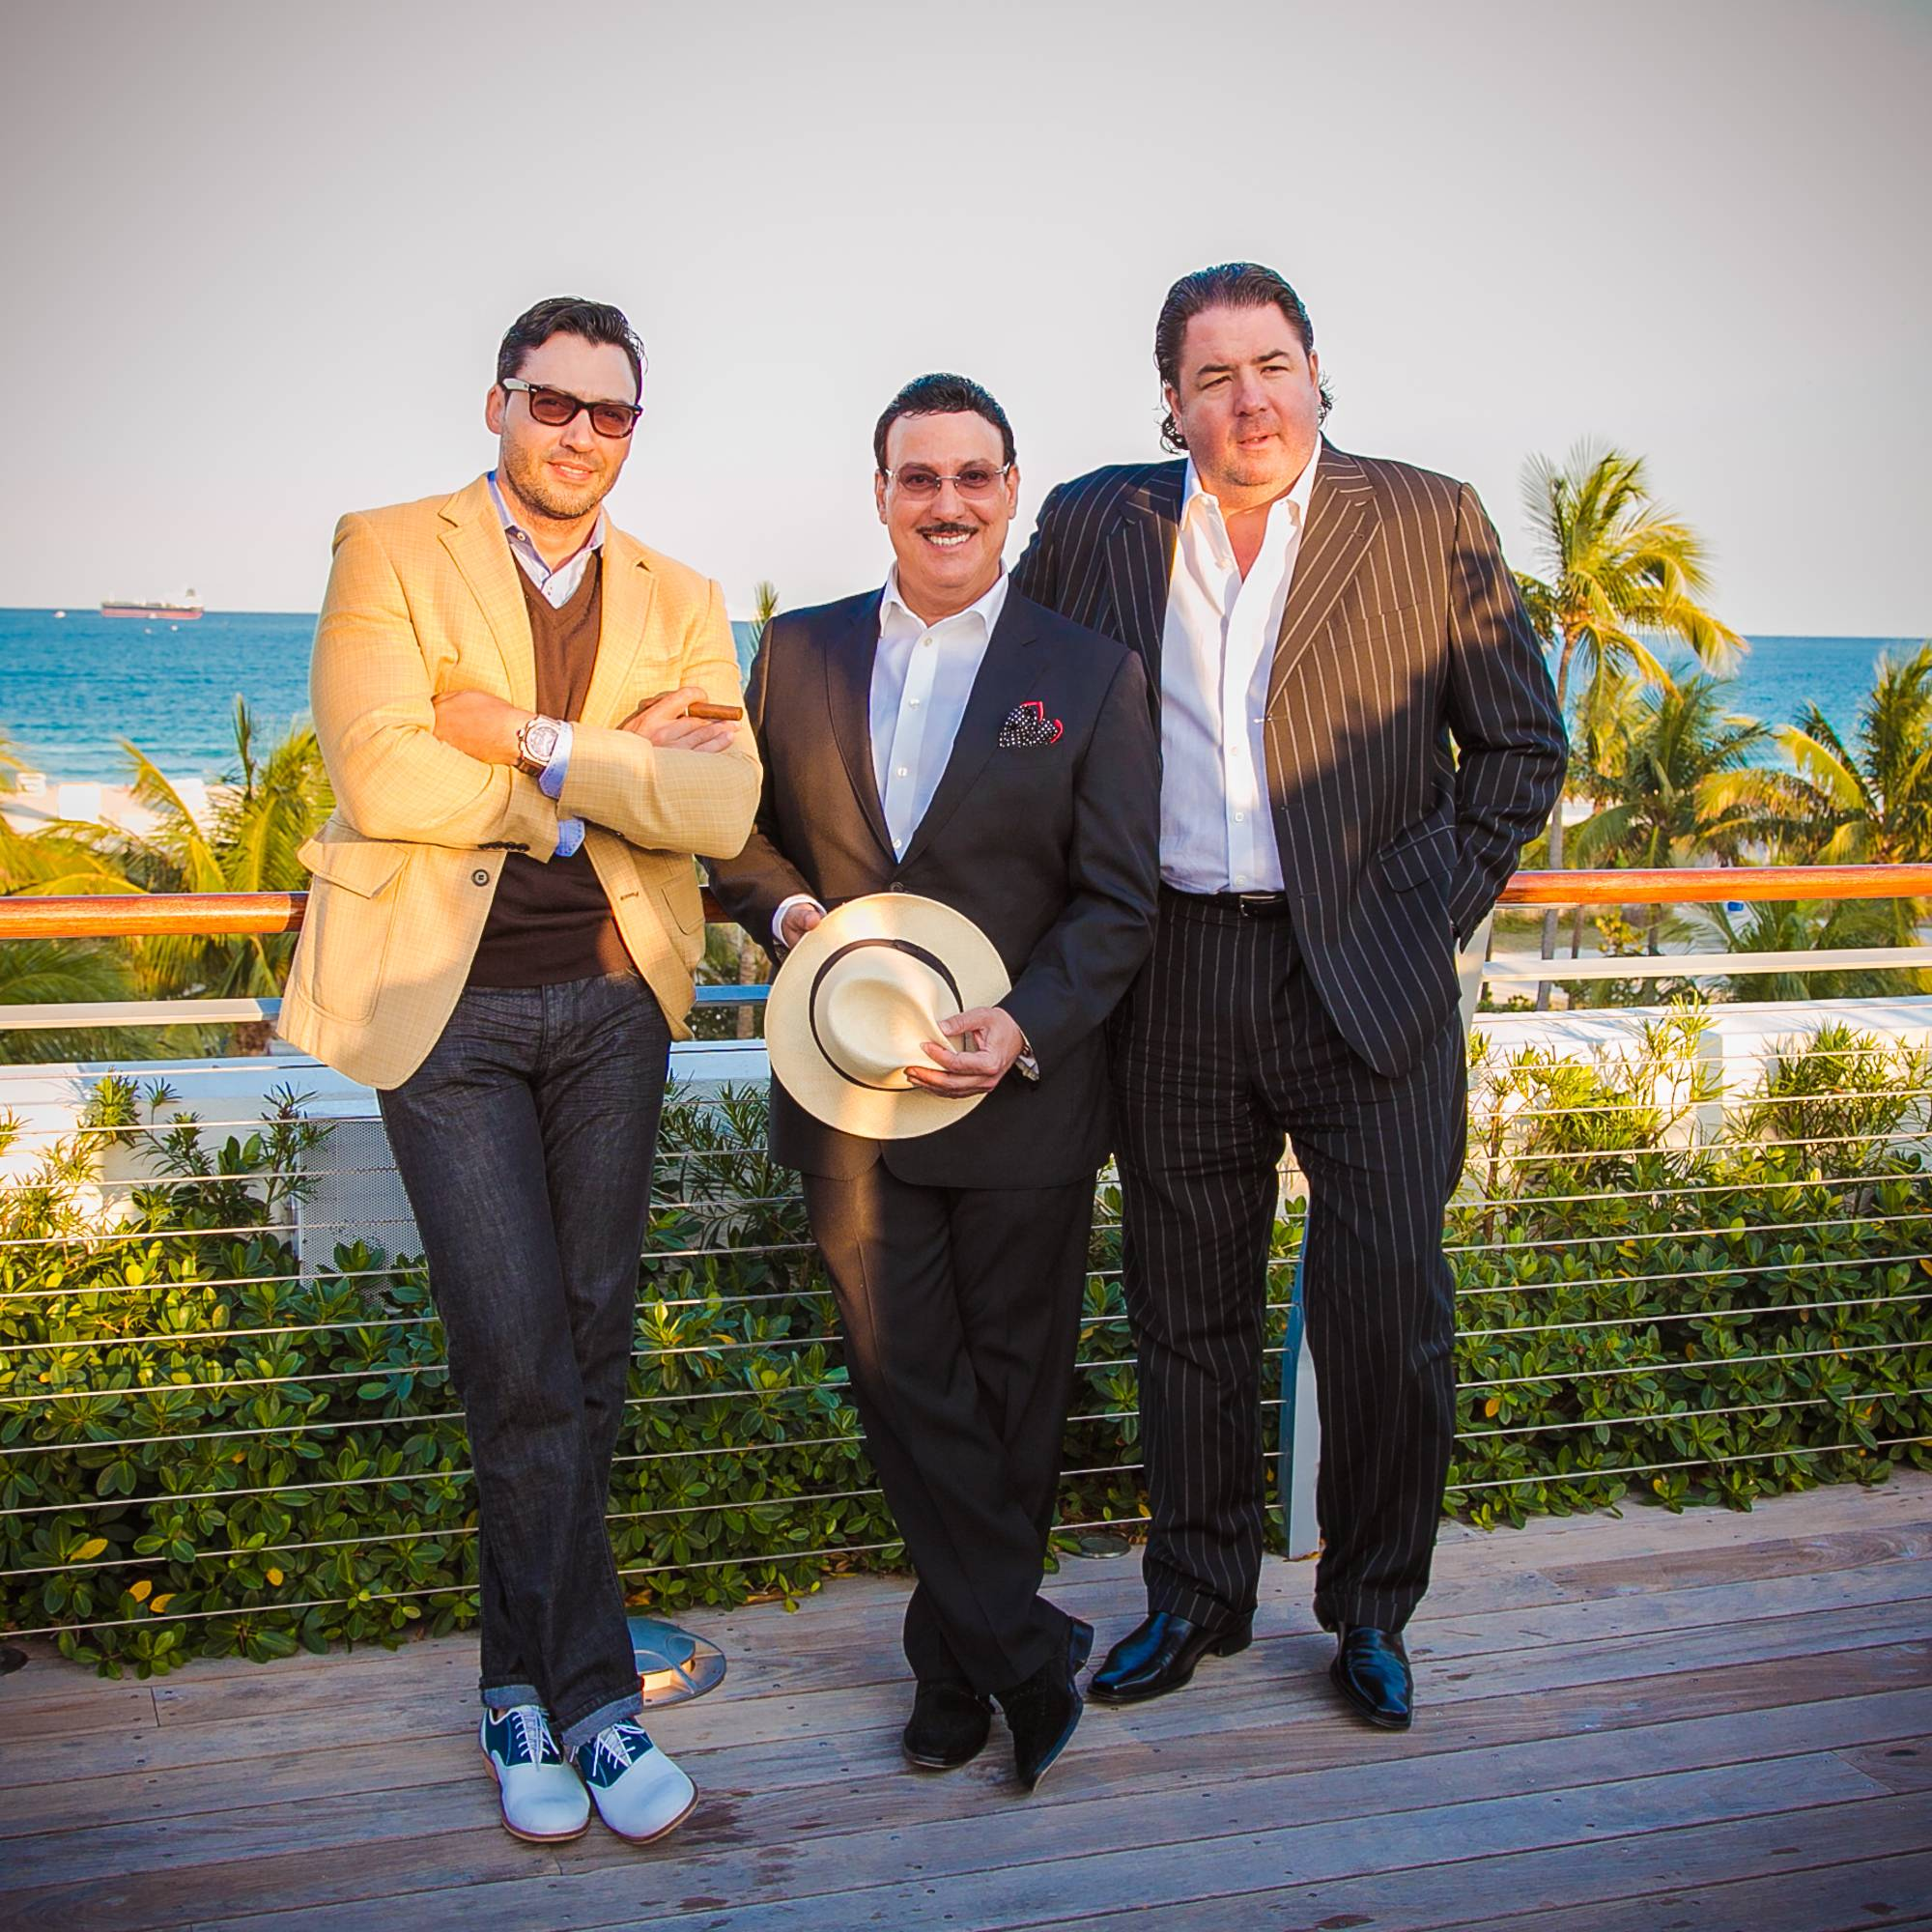 Manny Iriarte, of Iriarte Photography & Design, Carlos Fuente Jr, president of Arturo Fuente Cigars & Michael Bulnes, of Selecta Magazine